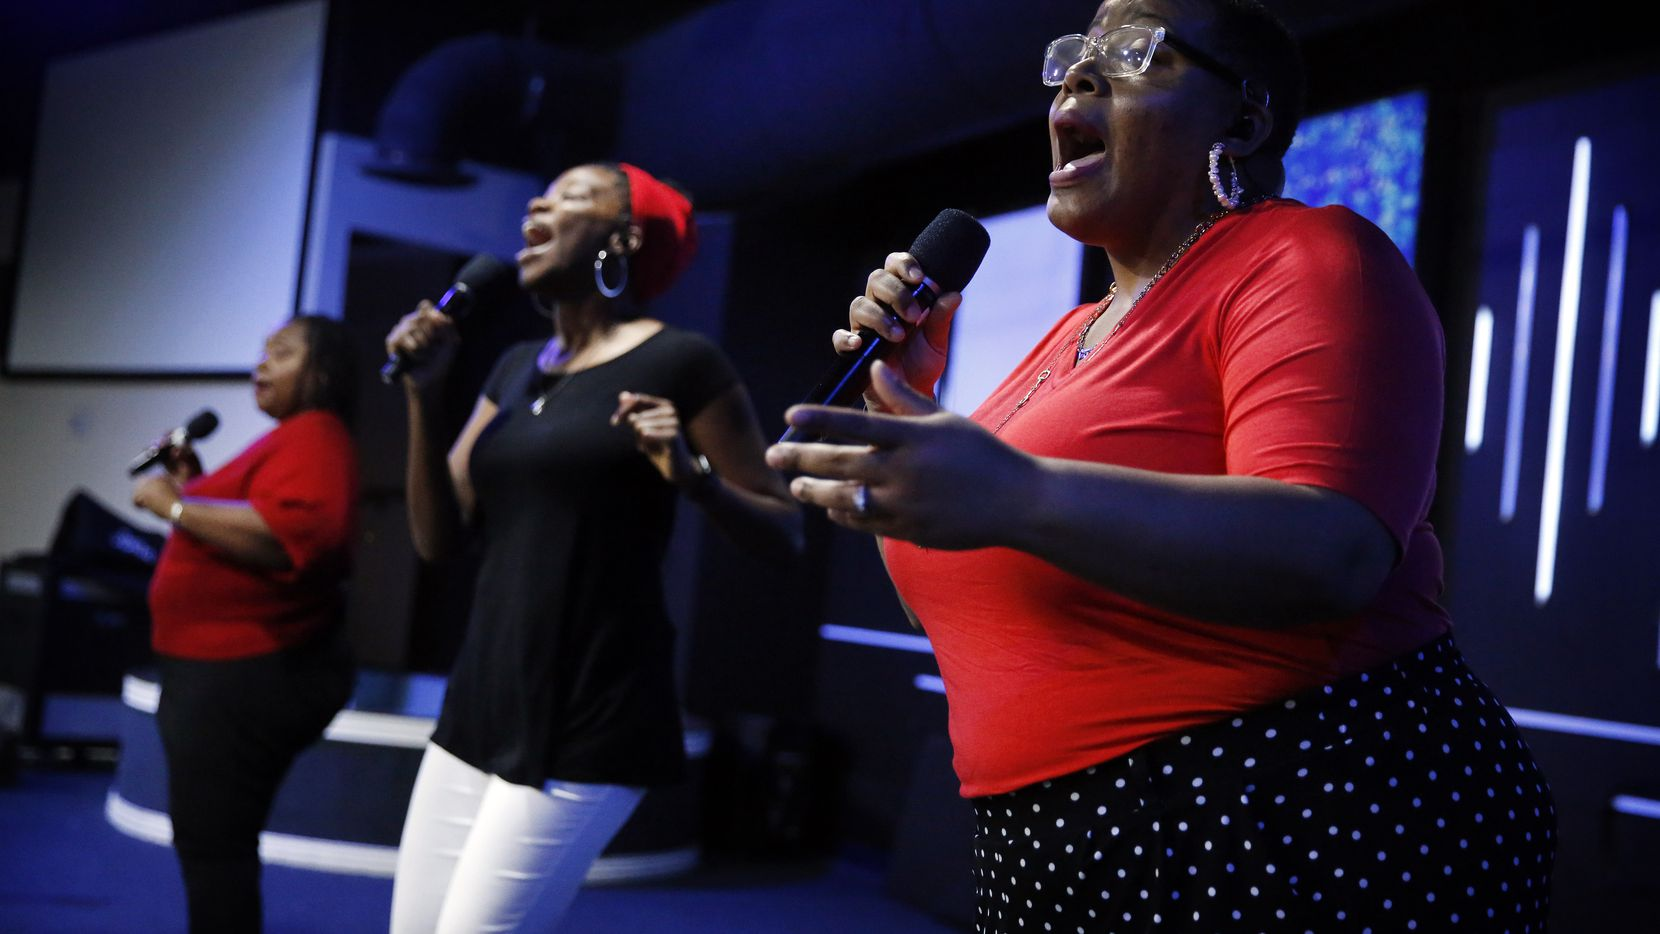 Chameka Barras (right) sings alongside two other members of the praise team, Monisha Randolph (center) and Candice Bryant, during a rehearsal at Cornerstone Baptist Church in Dallas. The church services are being held online during the COVID-19 pandemic.